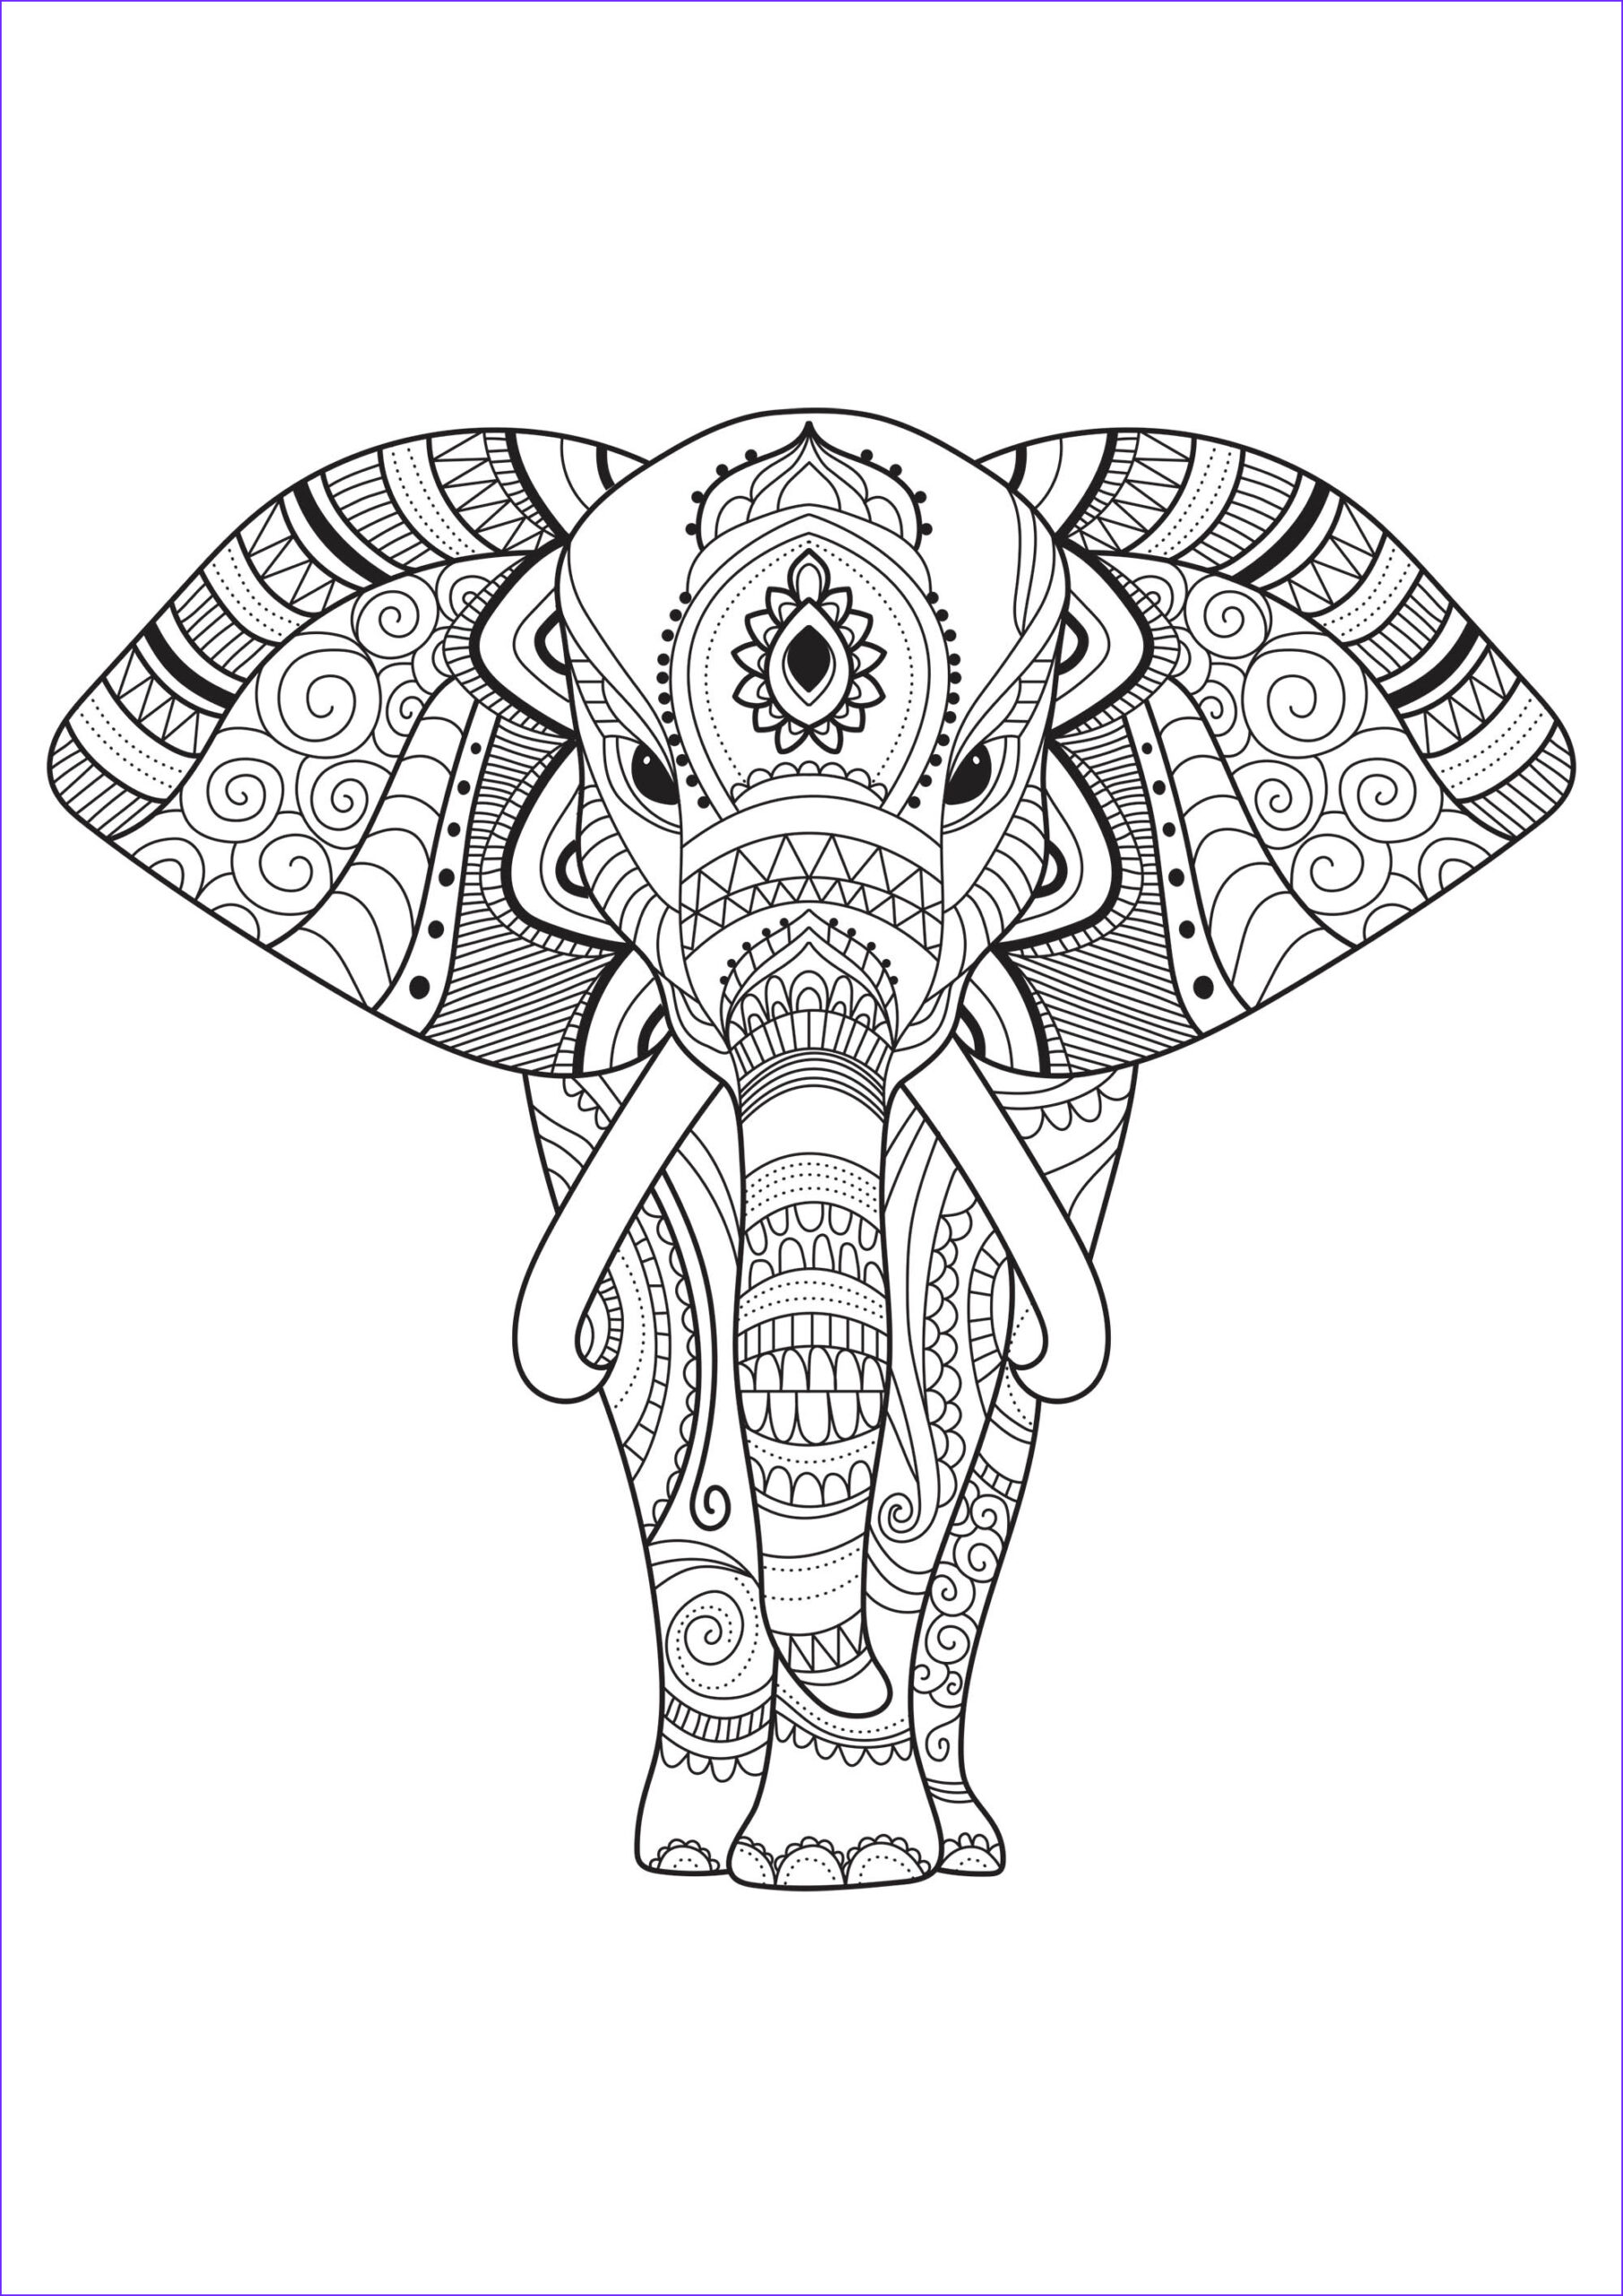 image=elephants coloring elephant with patterns 1 1